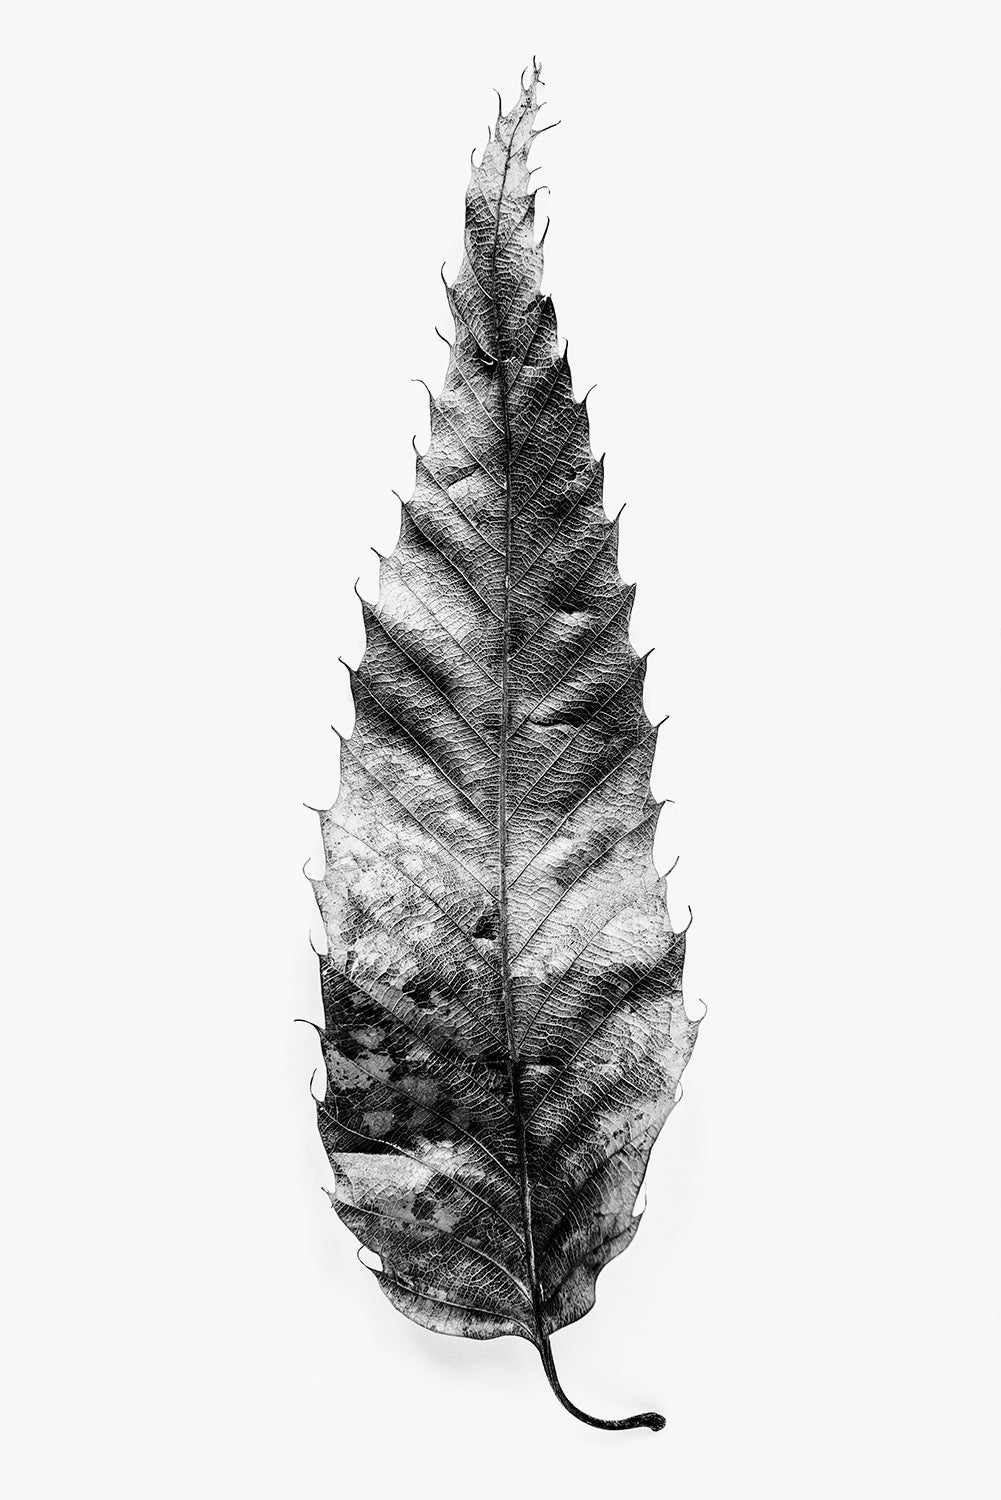 Leaf Texture - Black and White Photograph by Keith Dotson. Buy a fine art print here.